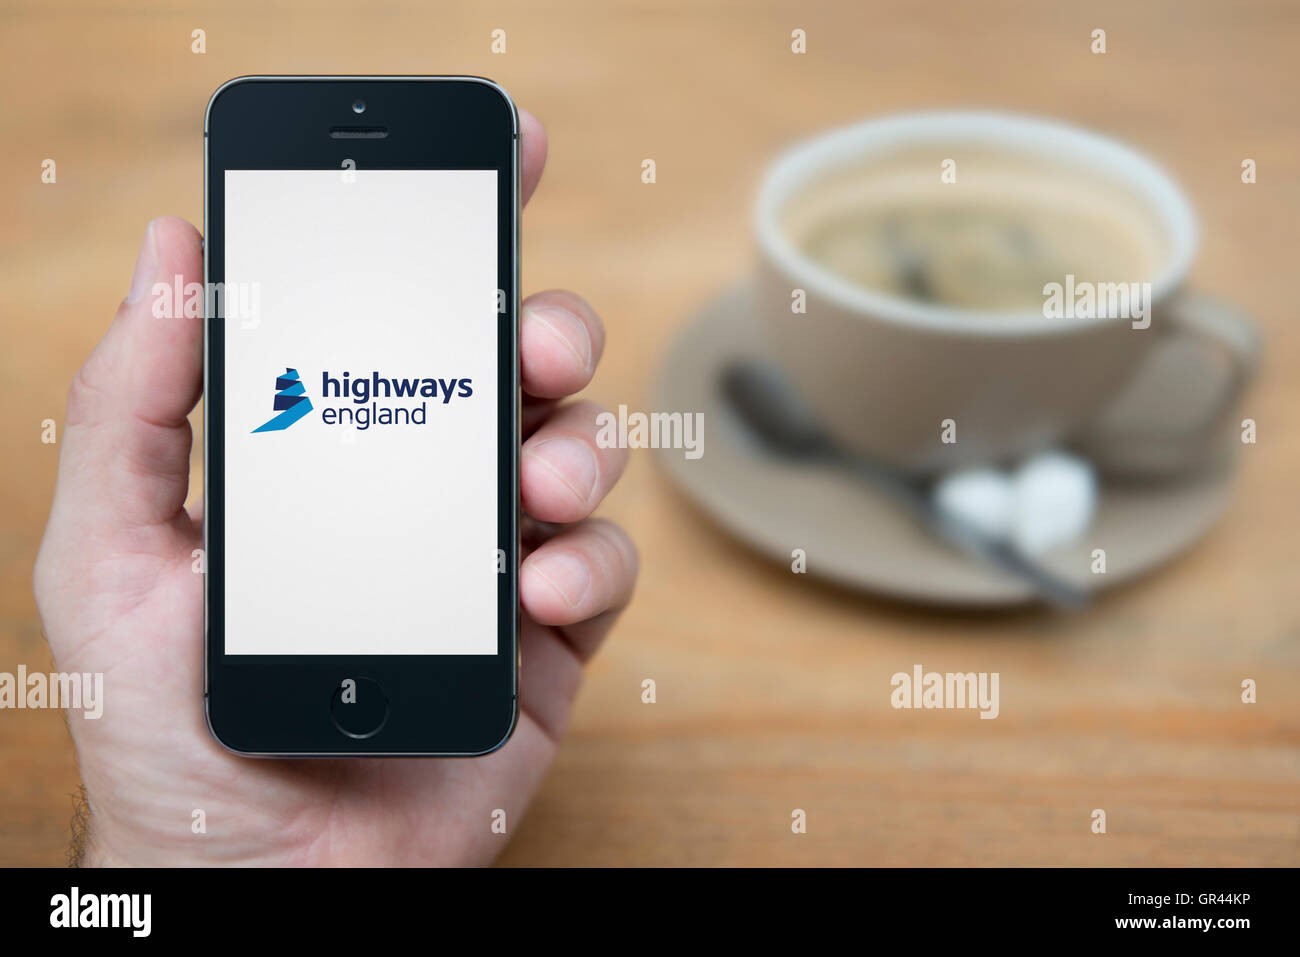 A man looks at his iPhone which displays the Highways England logo (Editorial use only). - Stock Image